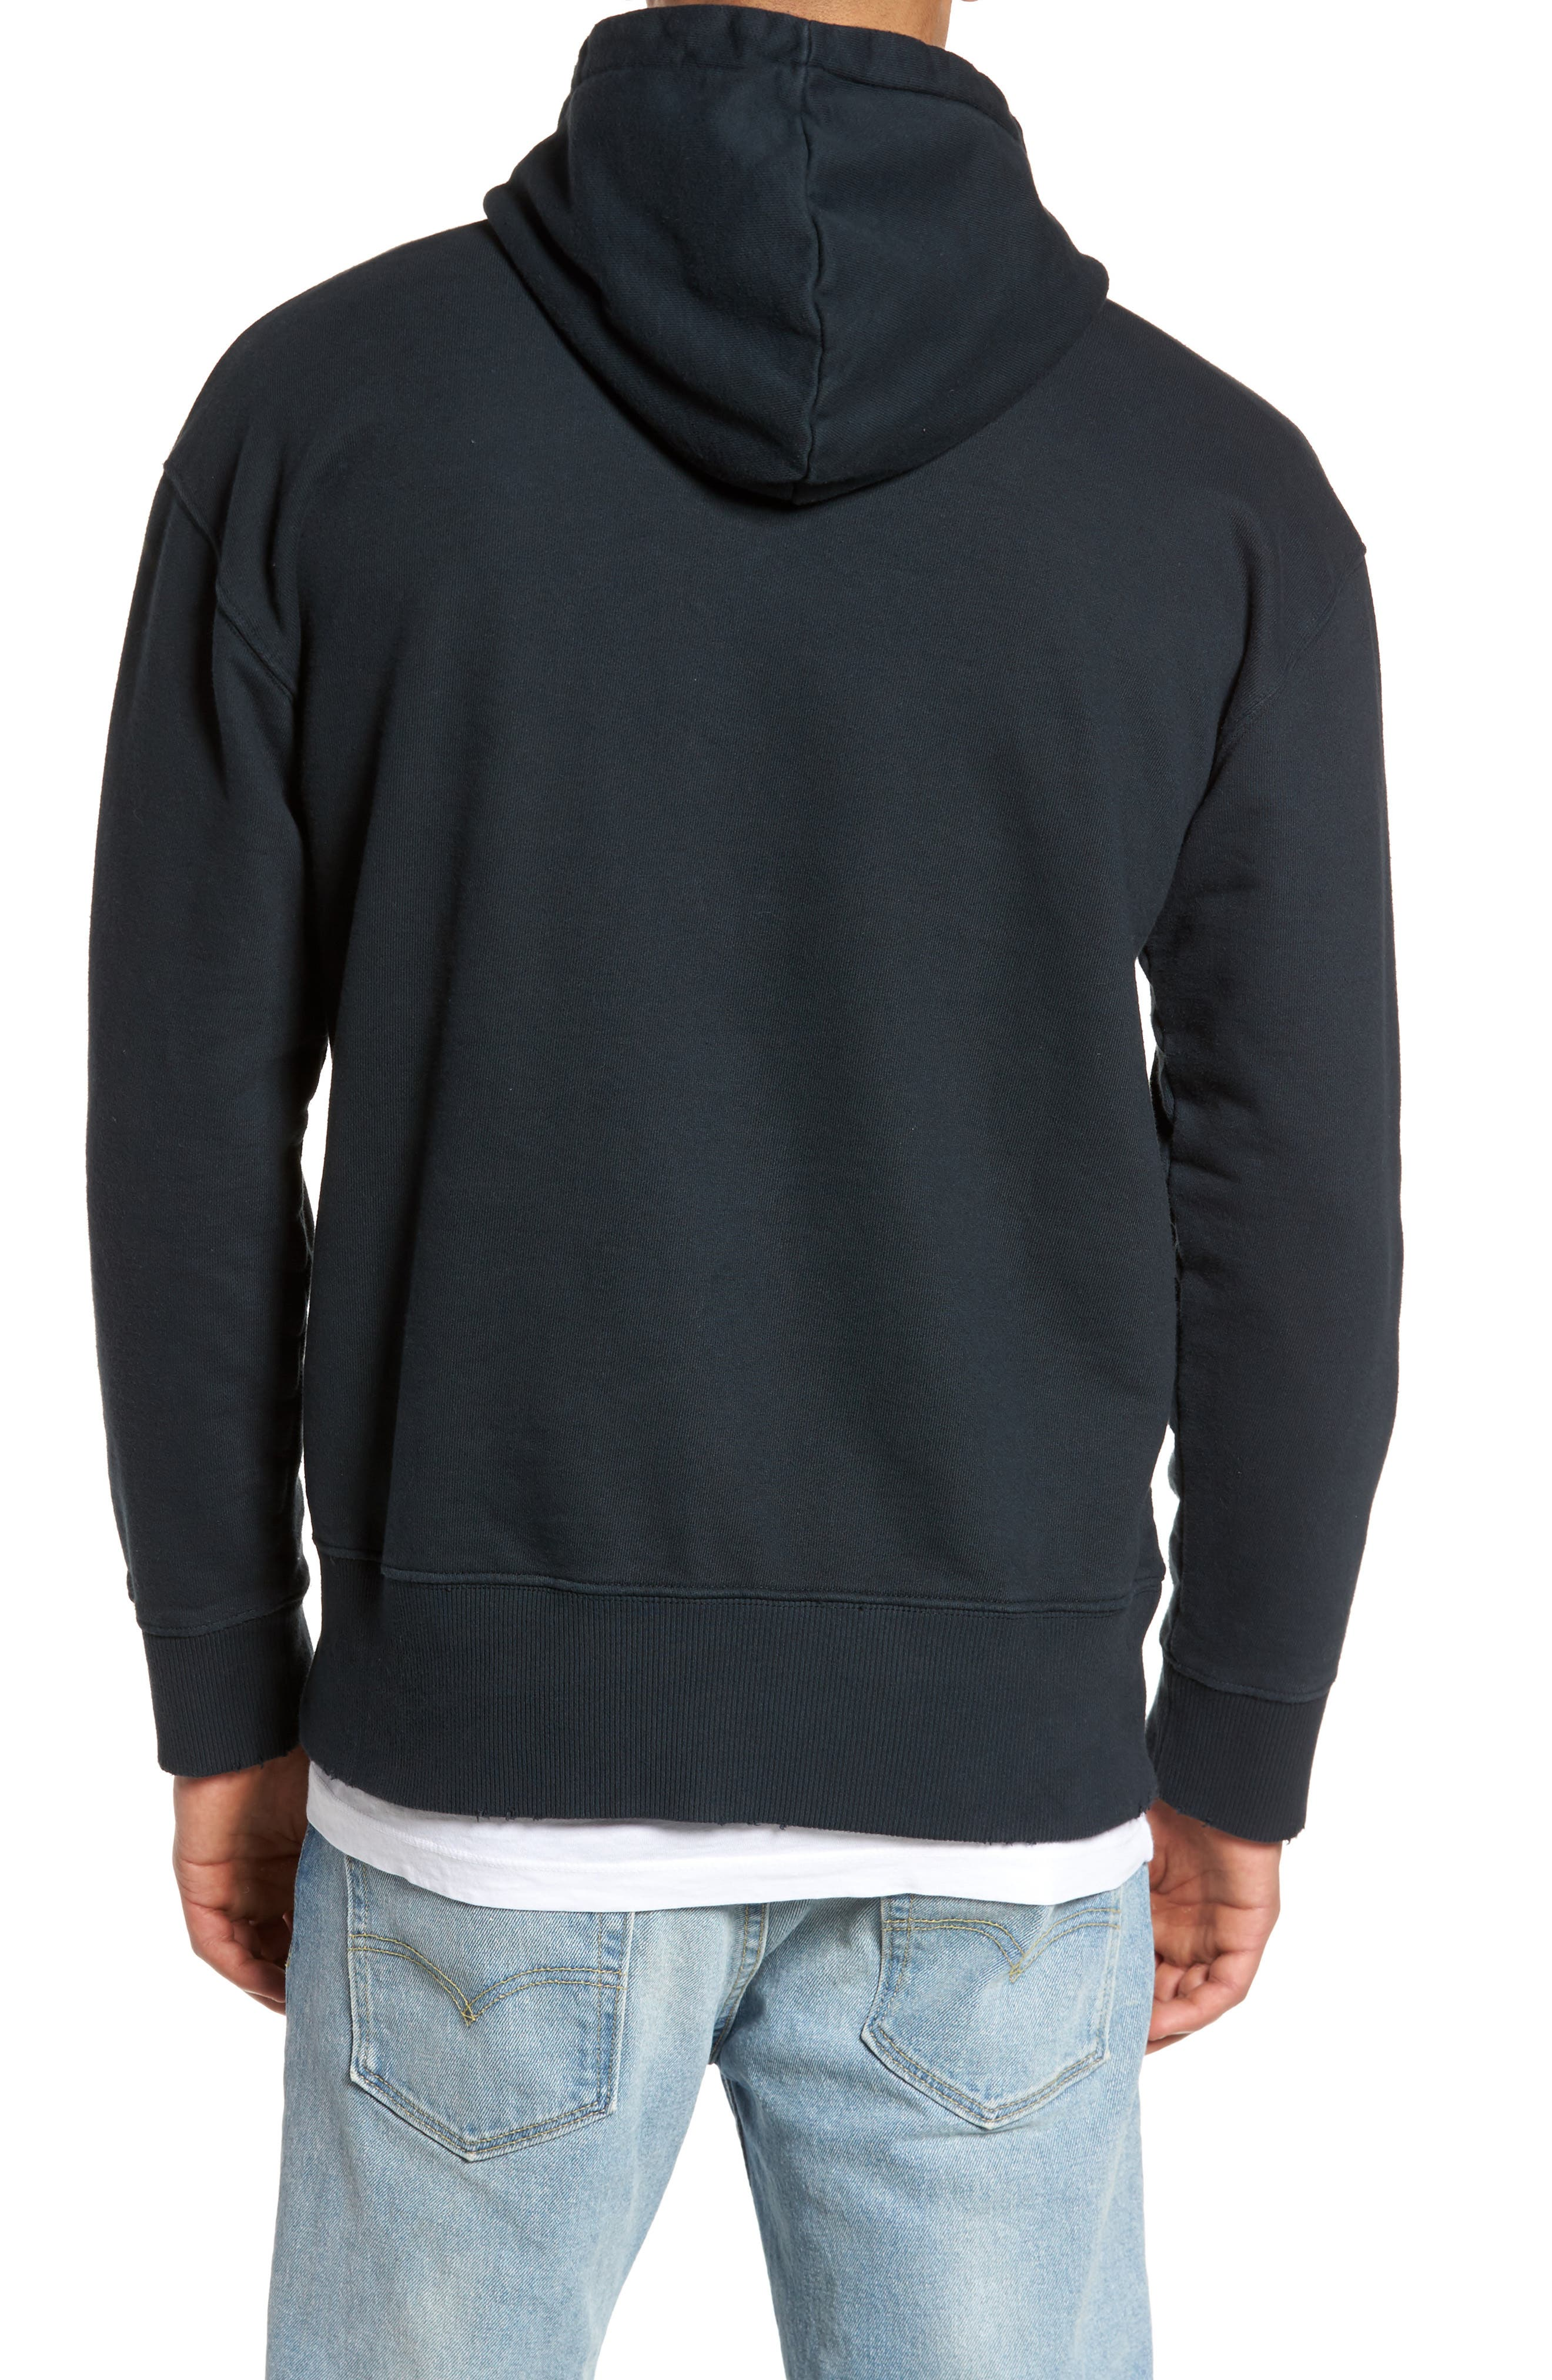 French Terry Hoodie,                             Alternate thumbnail 2, color,                             001